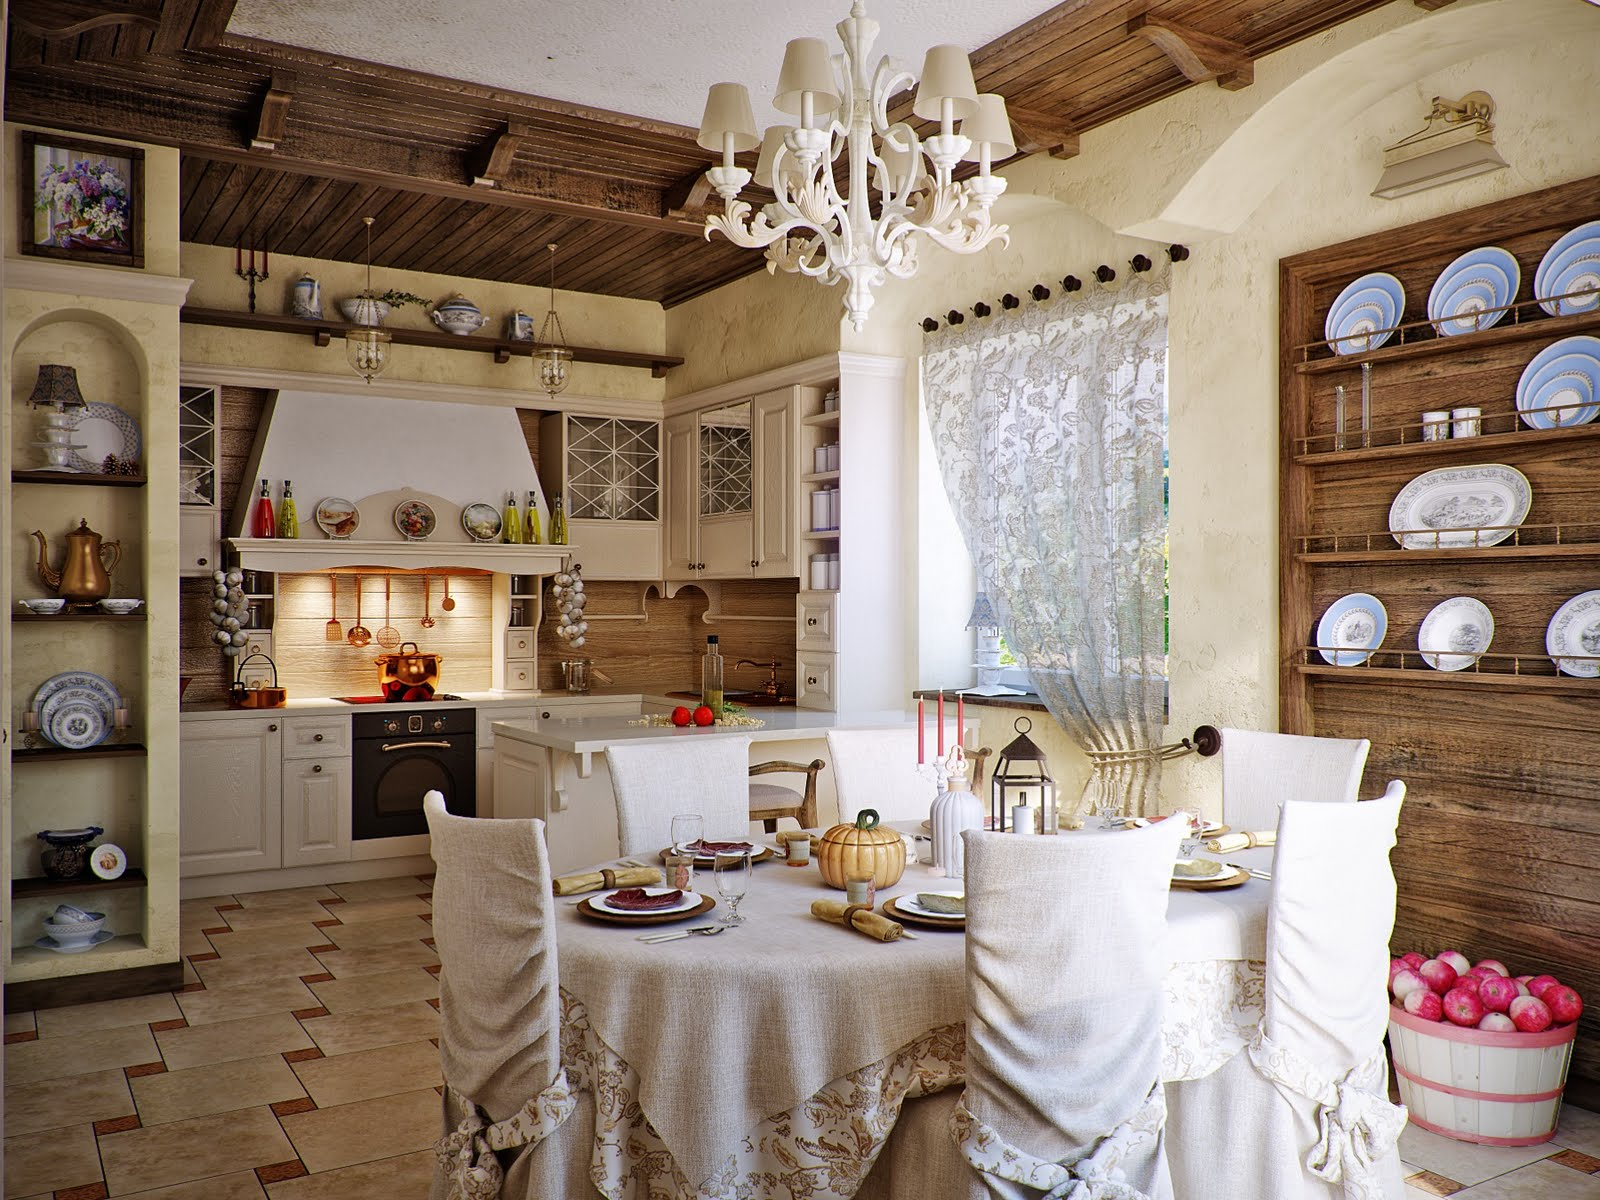 awesome country kitchen design svetlana nezus interior designs kitchen interior designs